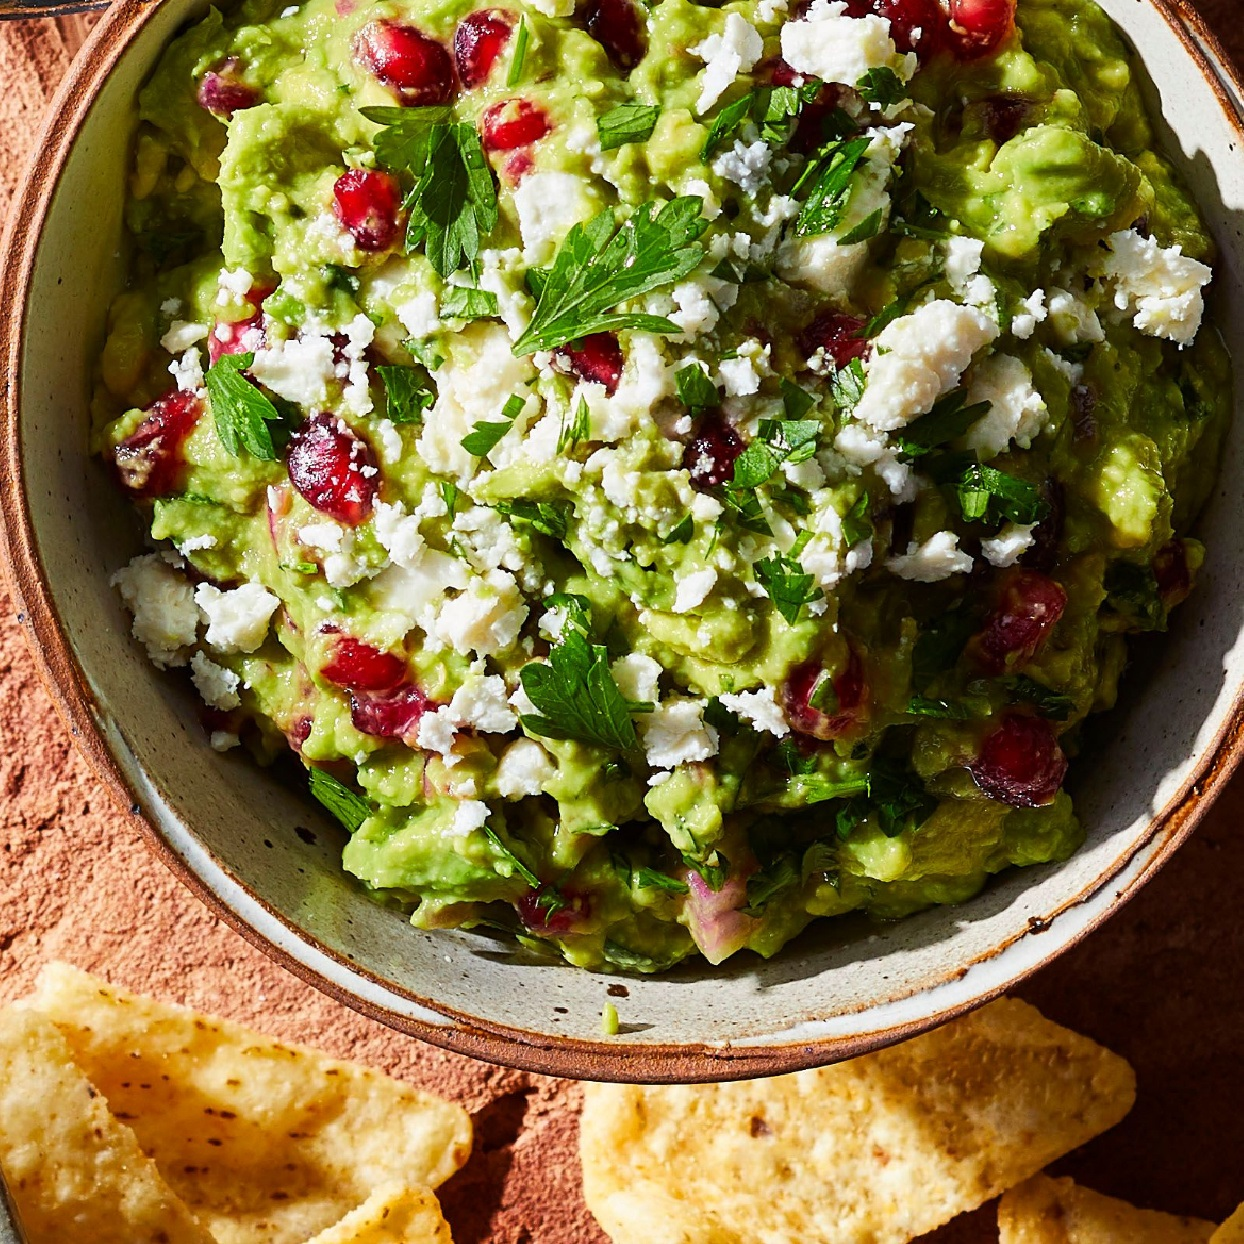 guacamole with pomegranate seeds, parsley, feta cheese, and red onion in a bowl with tortilla chips